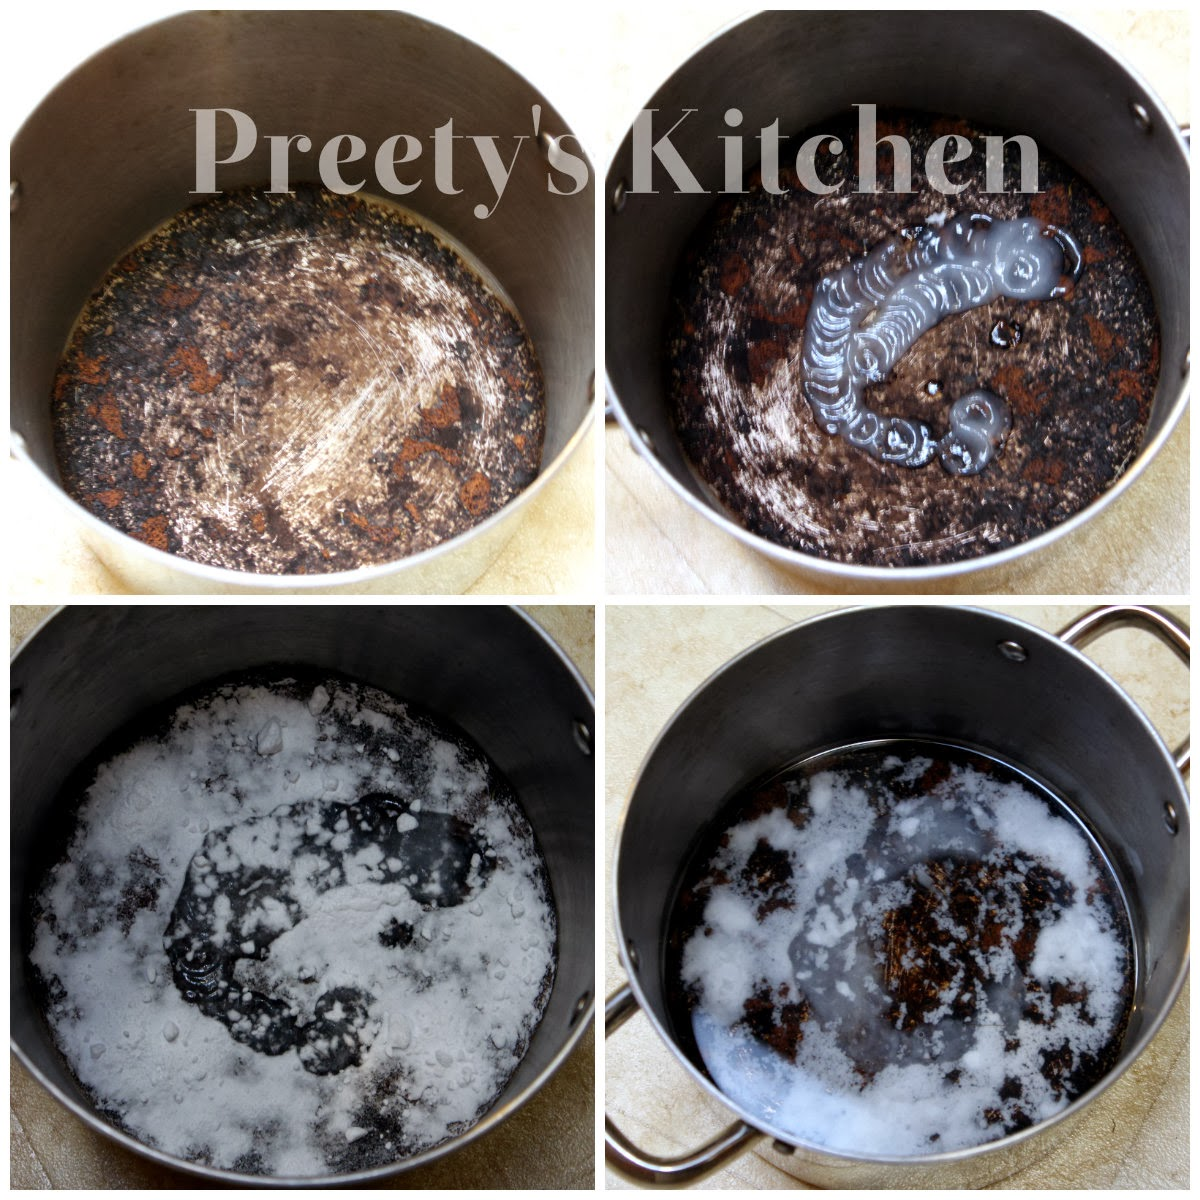 Aangebrande Pan Preety 39s Kitchen How To Clean Burned Food From Your Pots